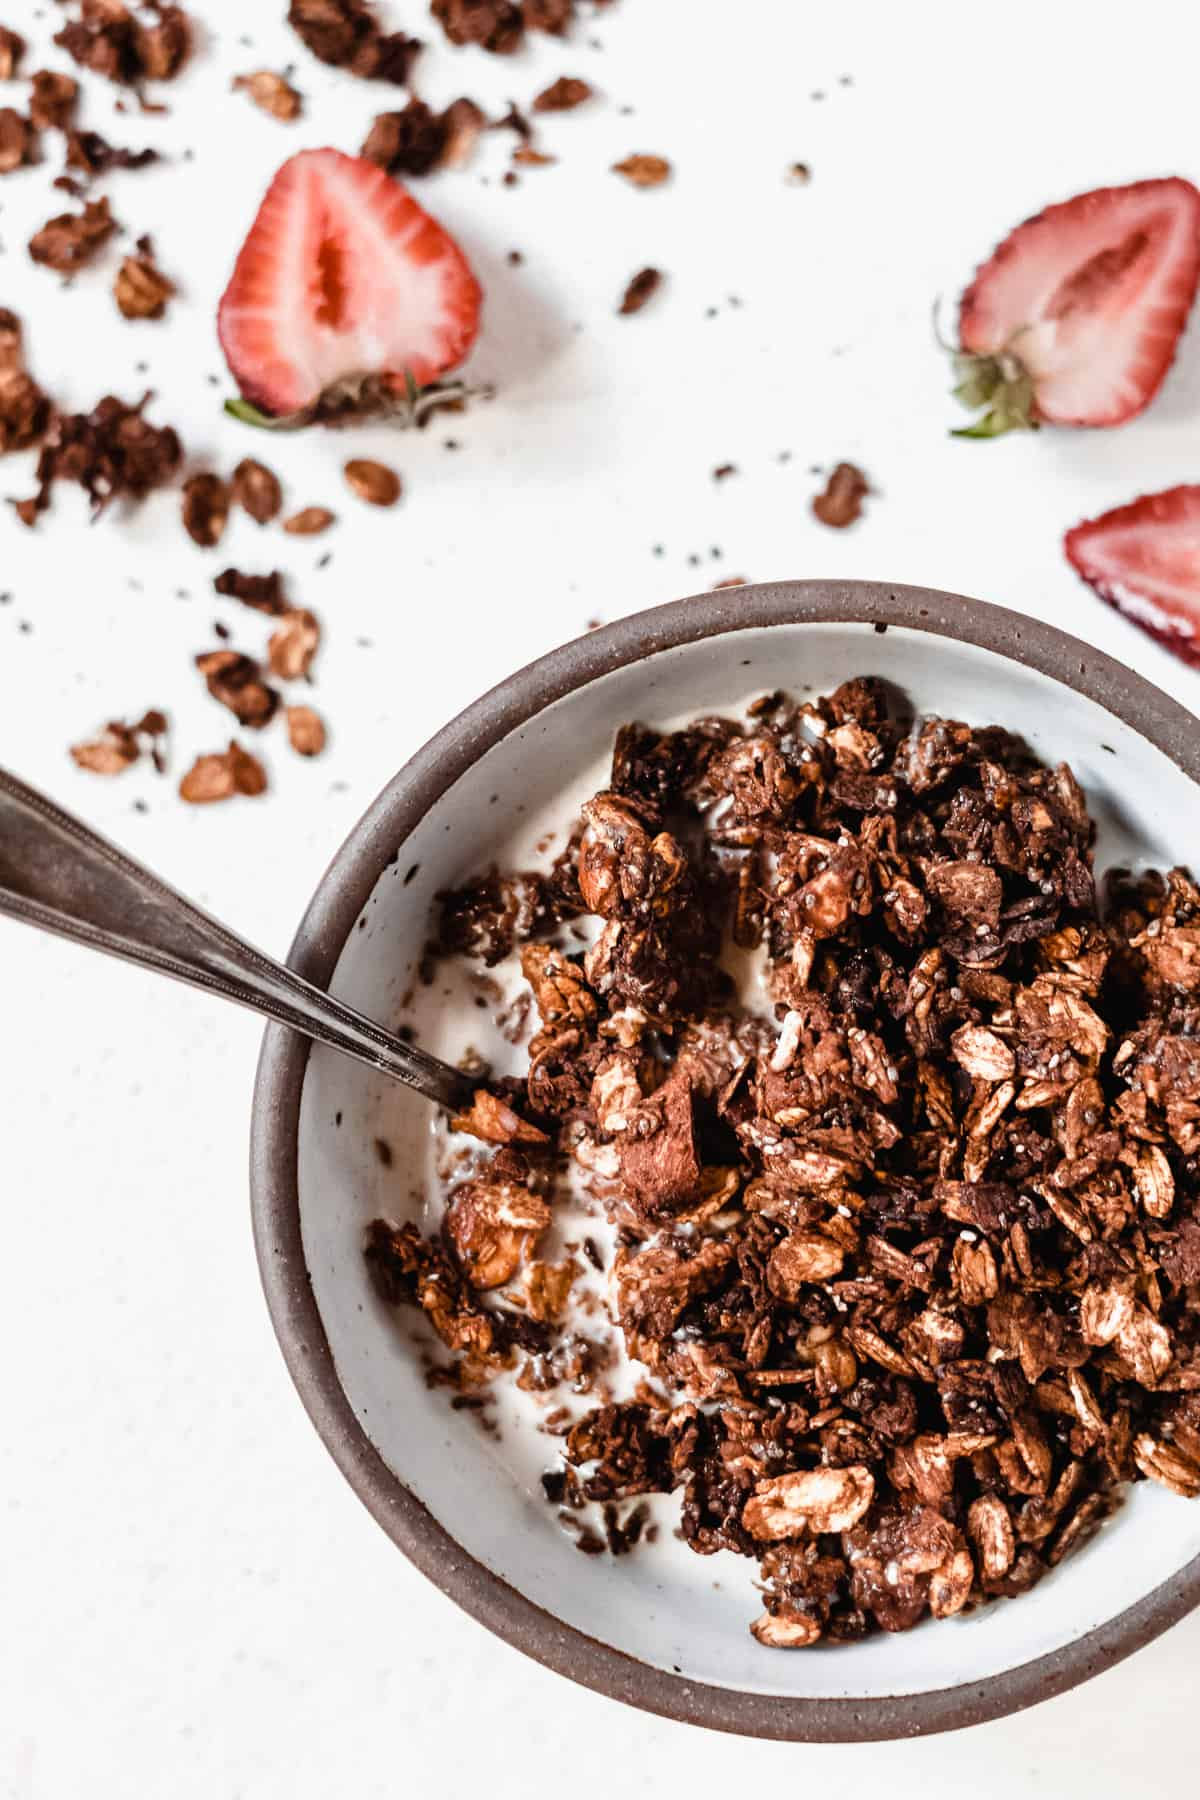 Bowl full of granola with a spoon in it and strawberries on the ground.